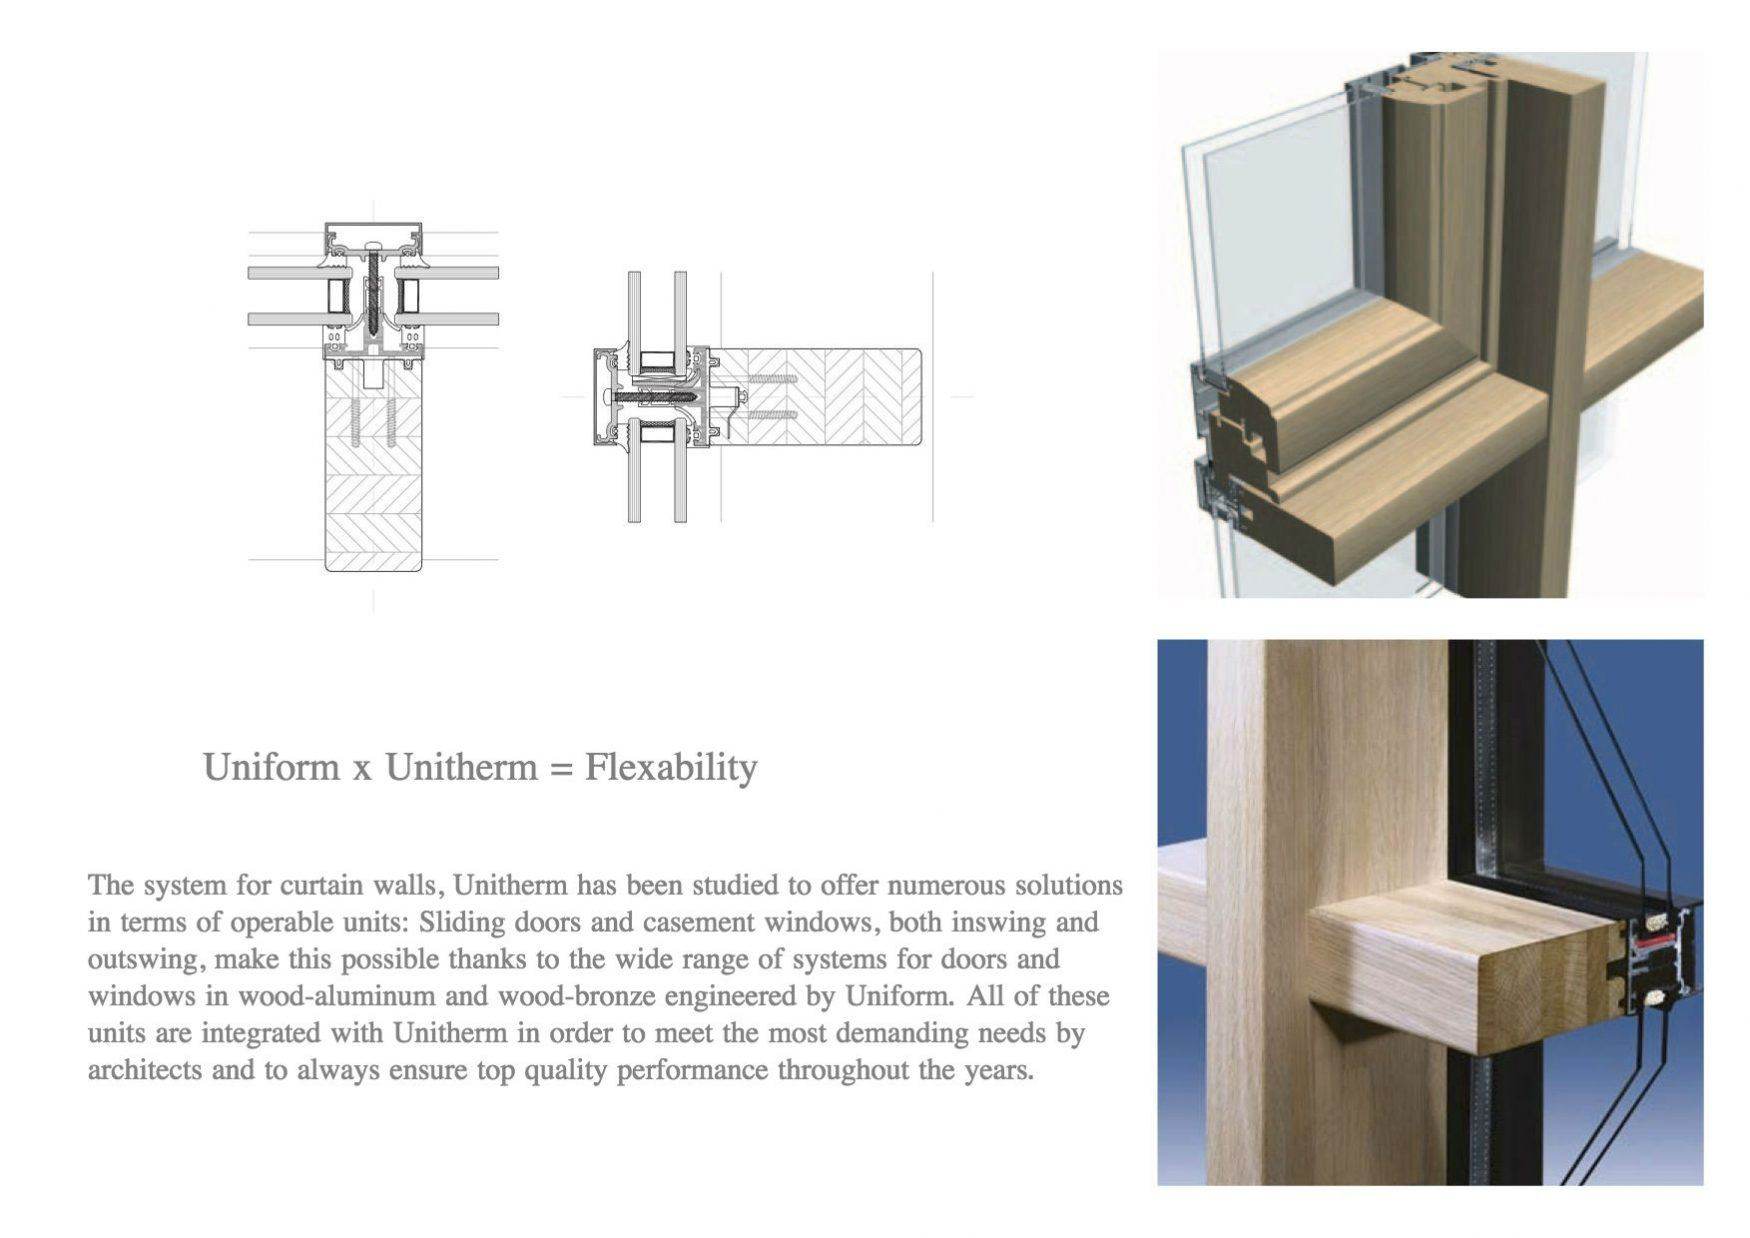 uniform curtain wall and storefront windows